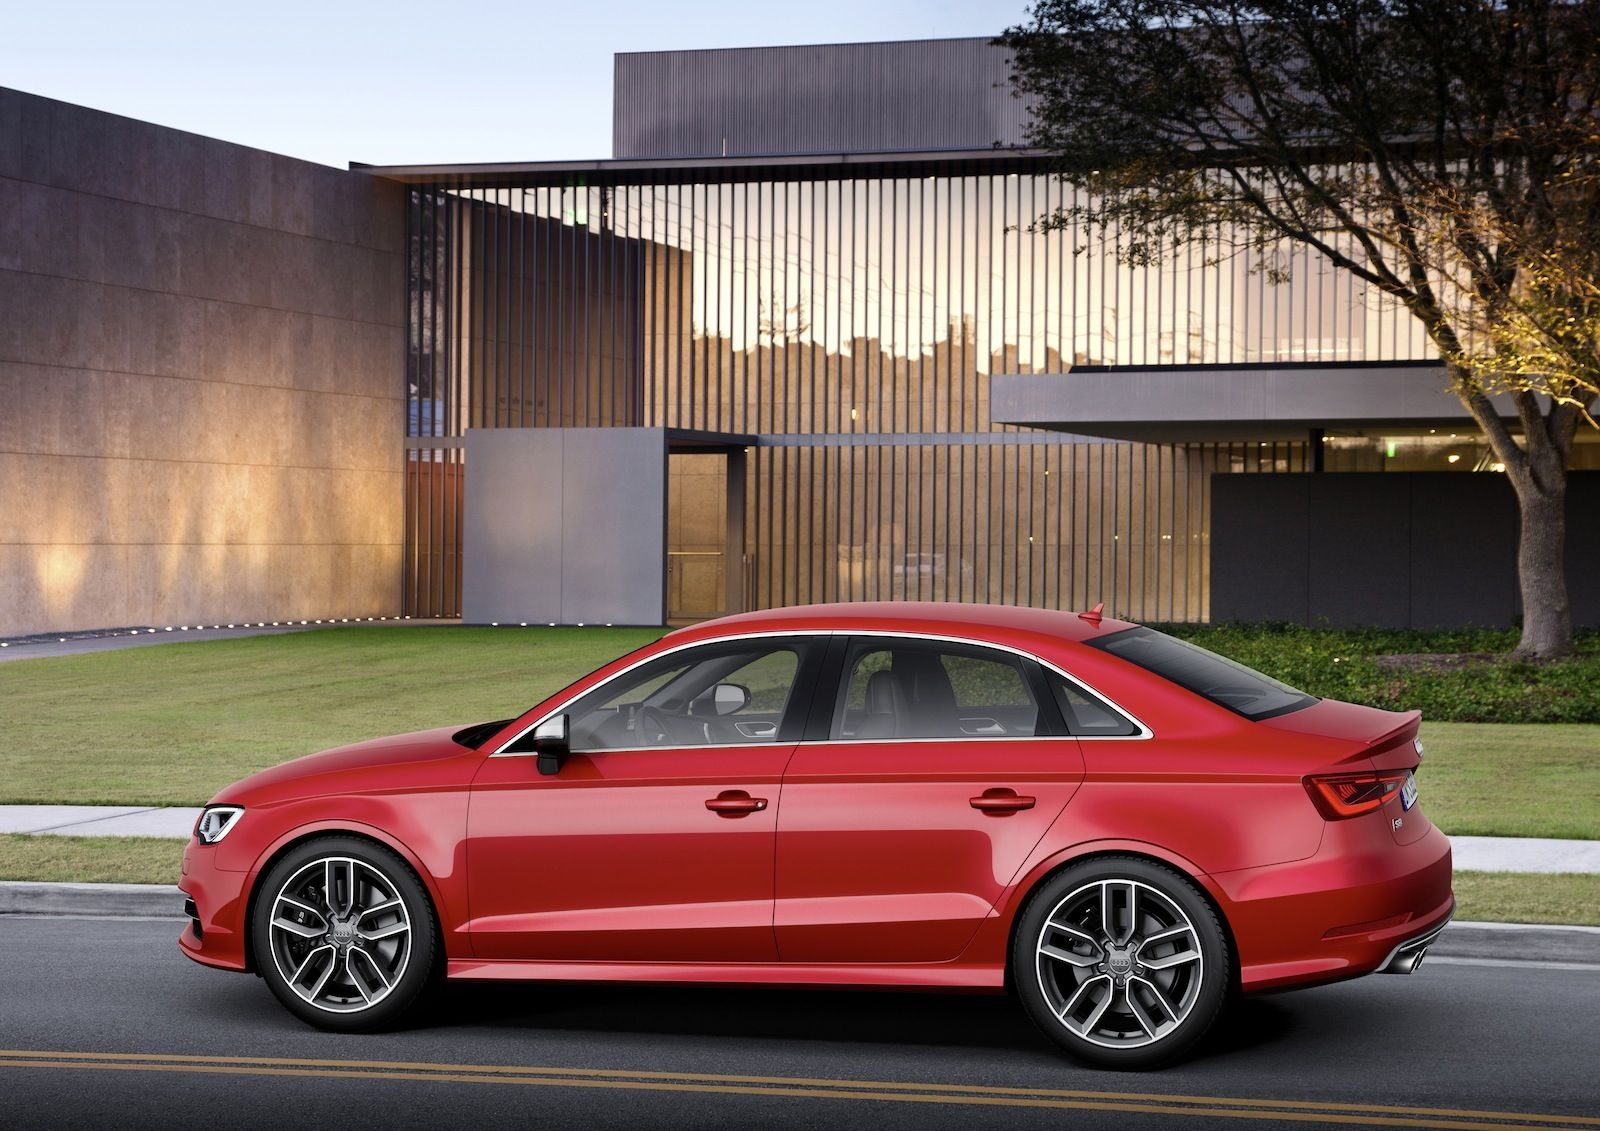 Audi Sedan Hd Wallpapers Http Wallsauto Com Audi